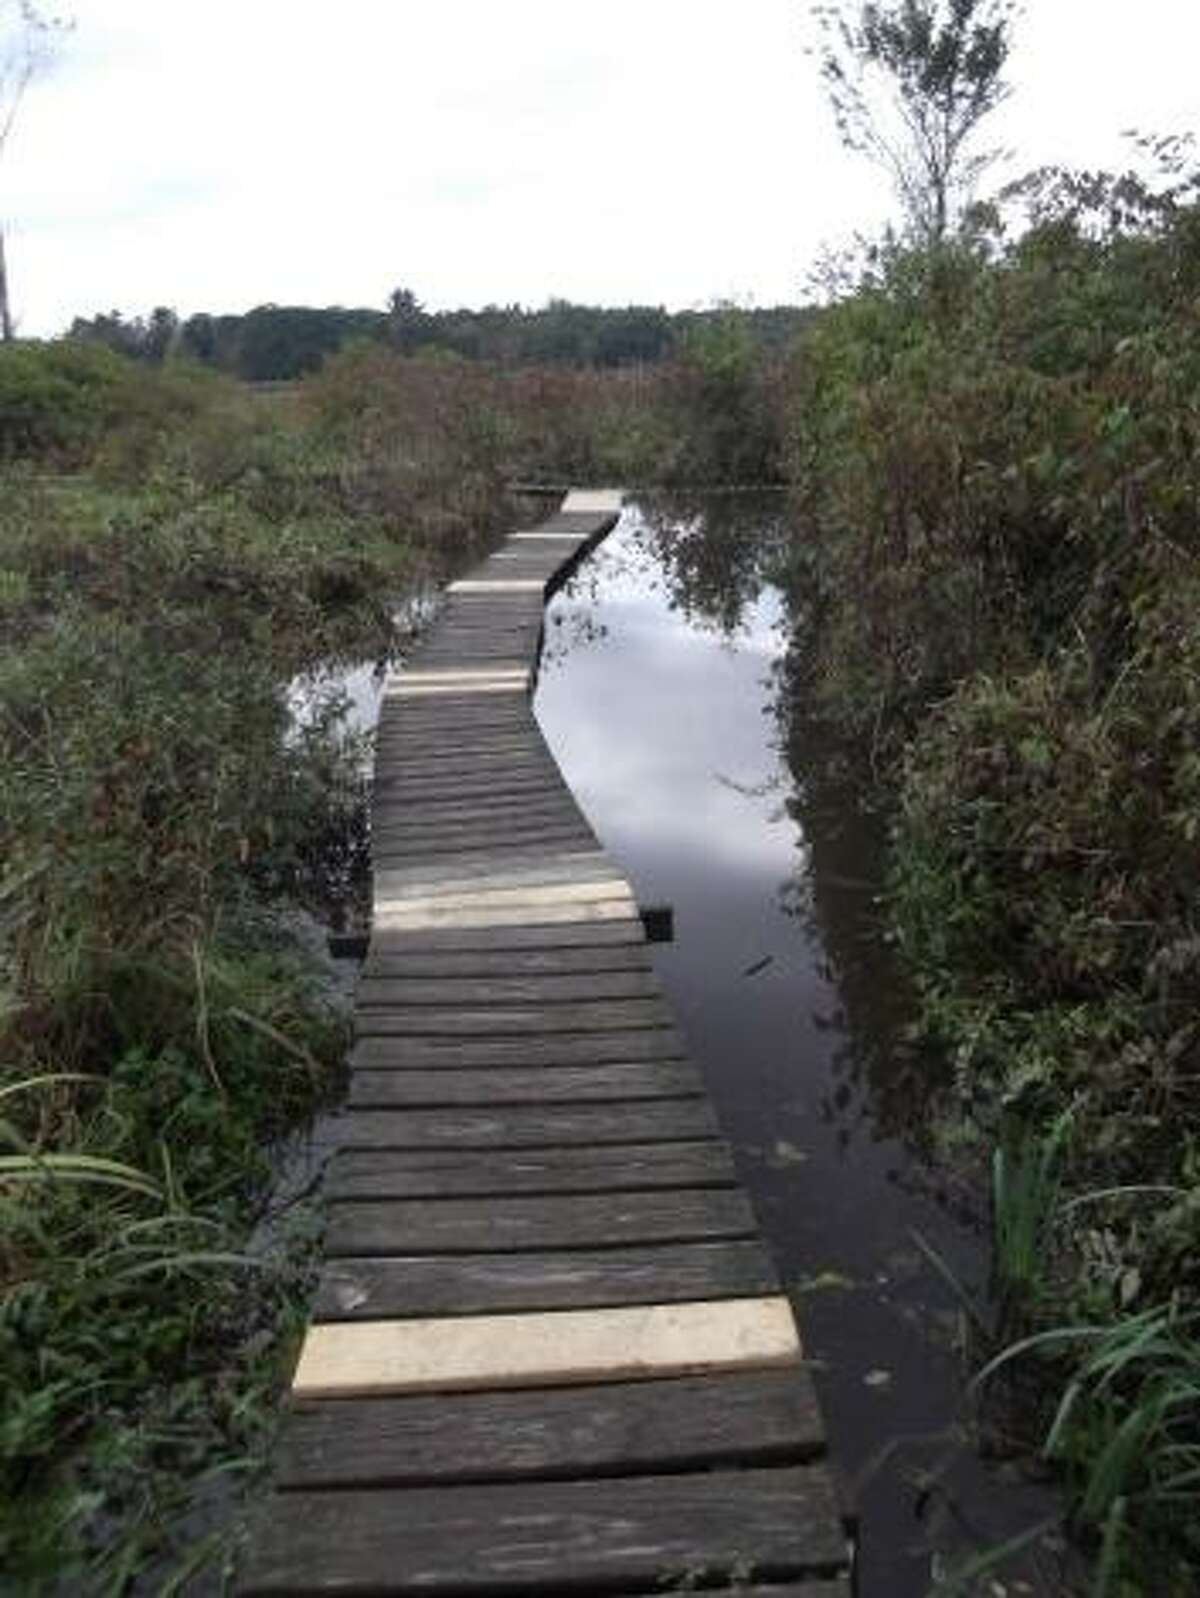 By KAITLYN YEAGER White Memorial Foundation's boardwalk, which leads hikers through its popular Little Pond area, is partially repaired.